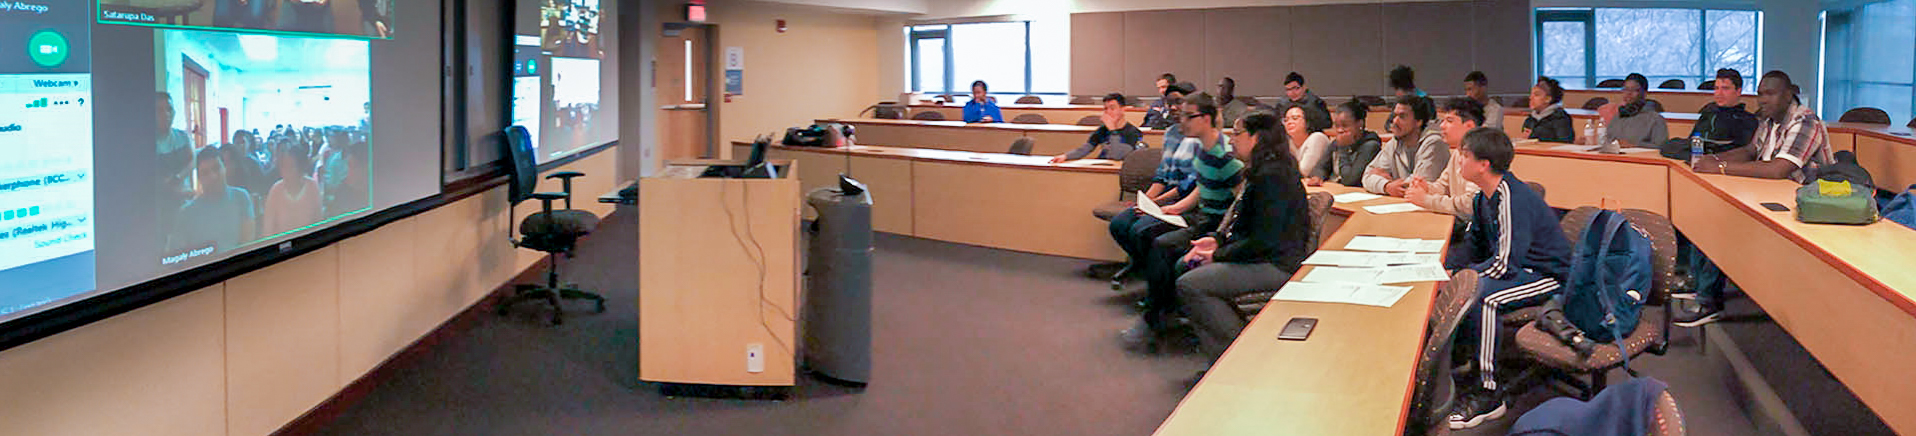 Students in a classroom looking at a video chat